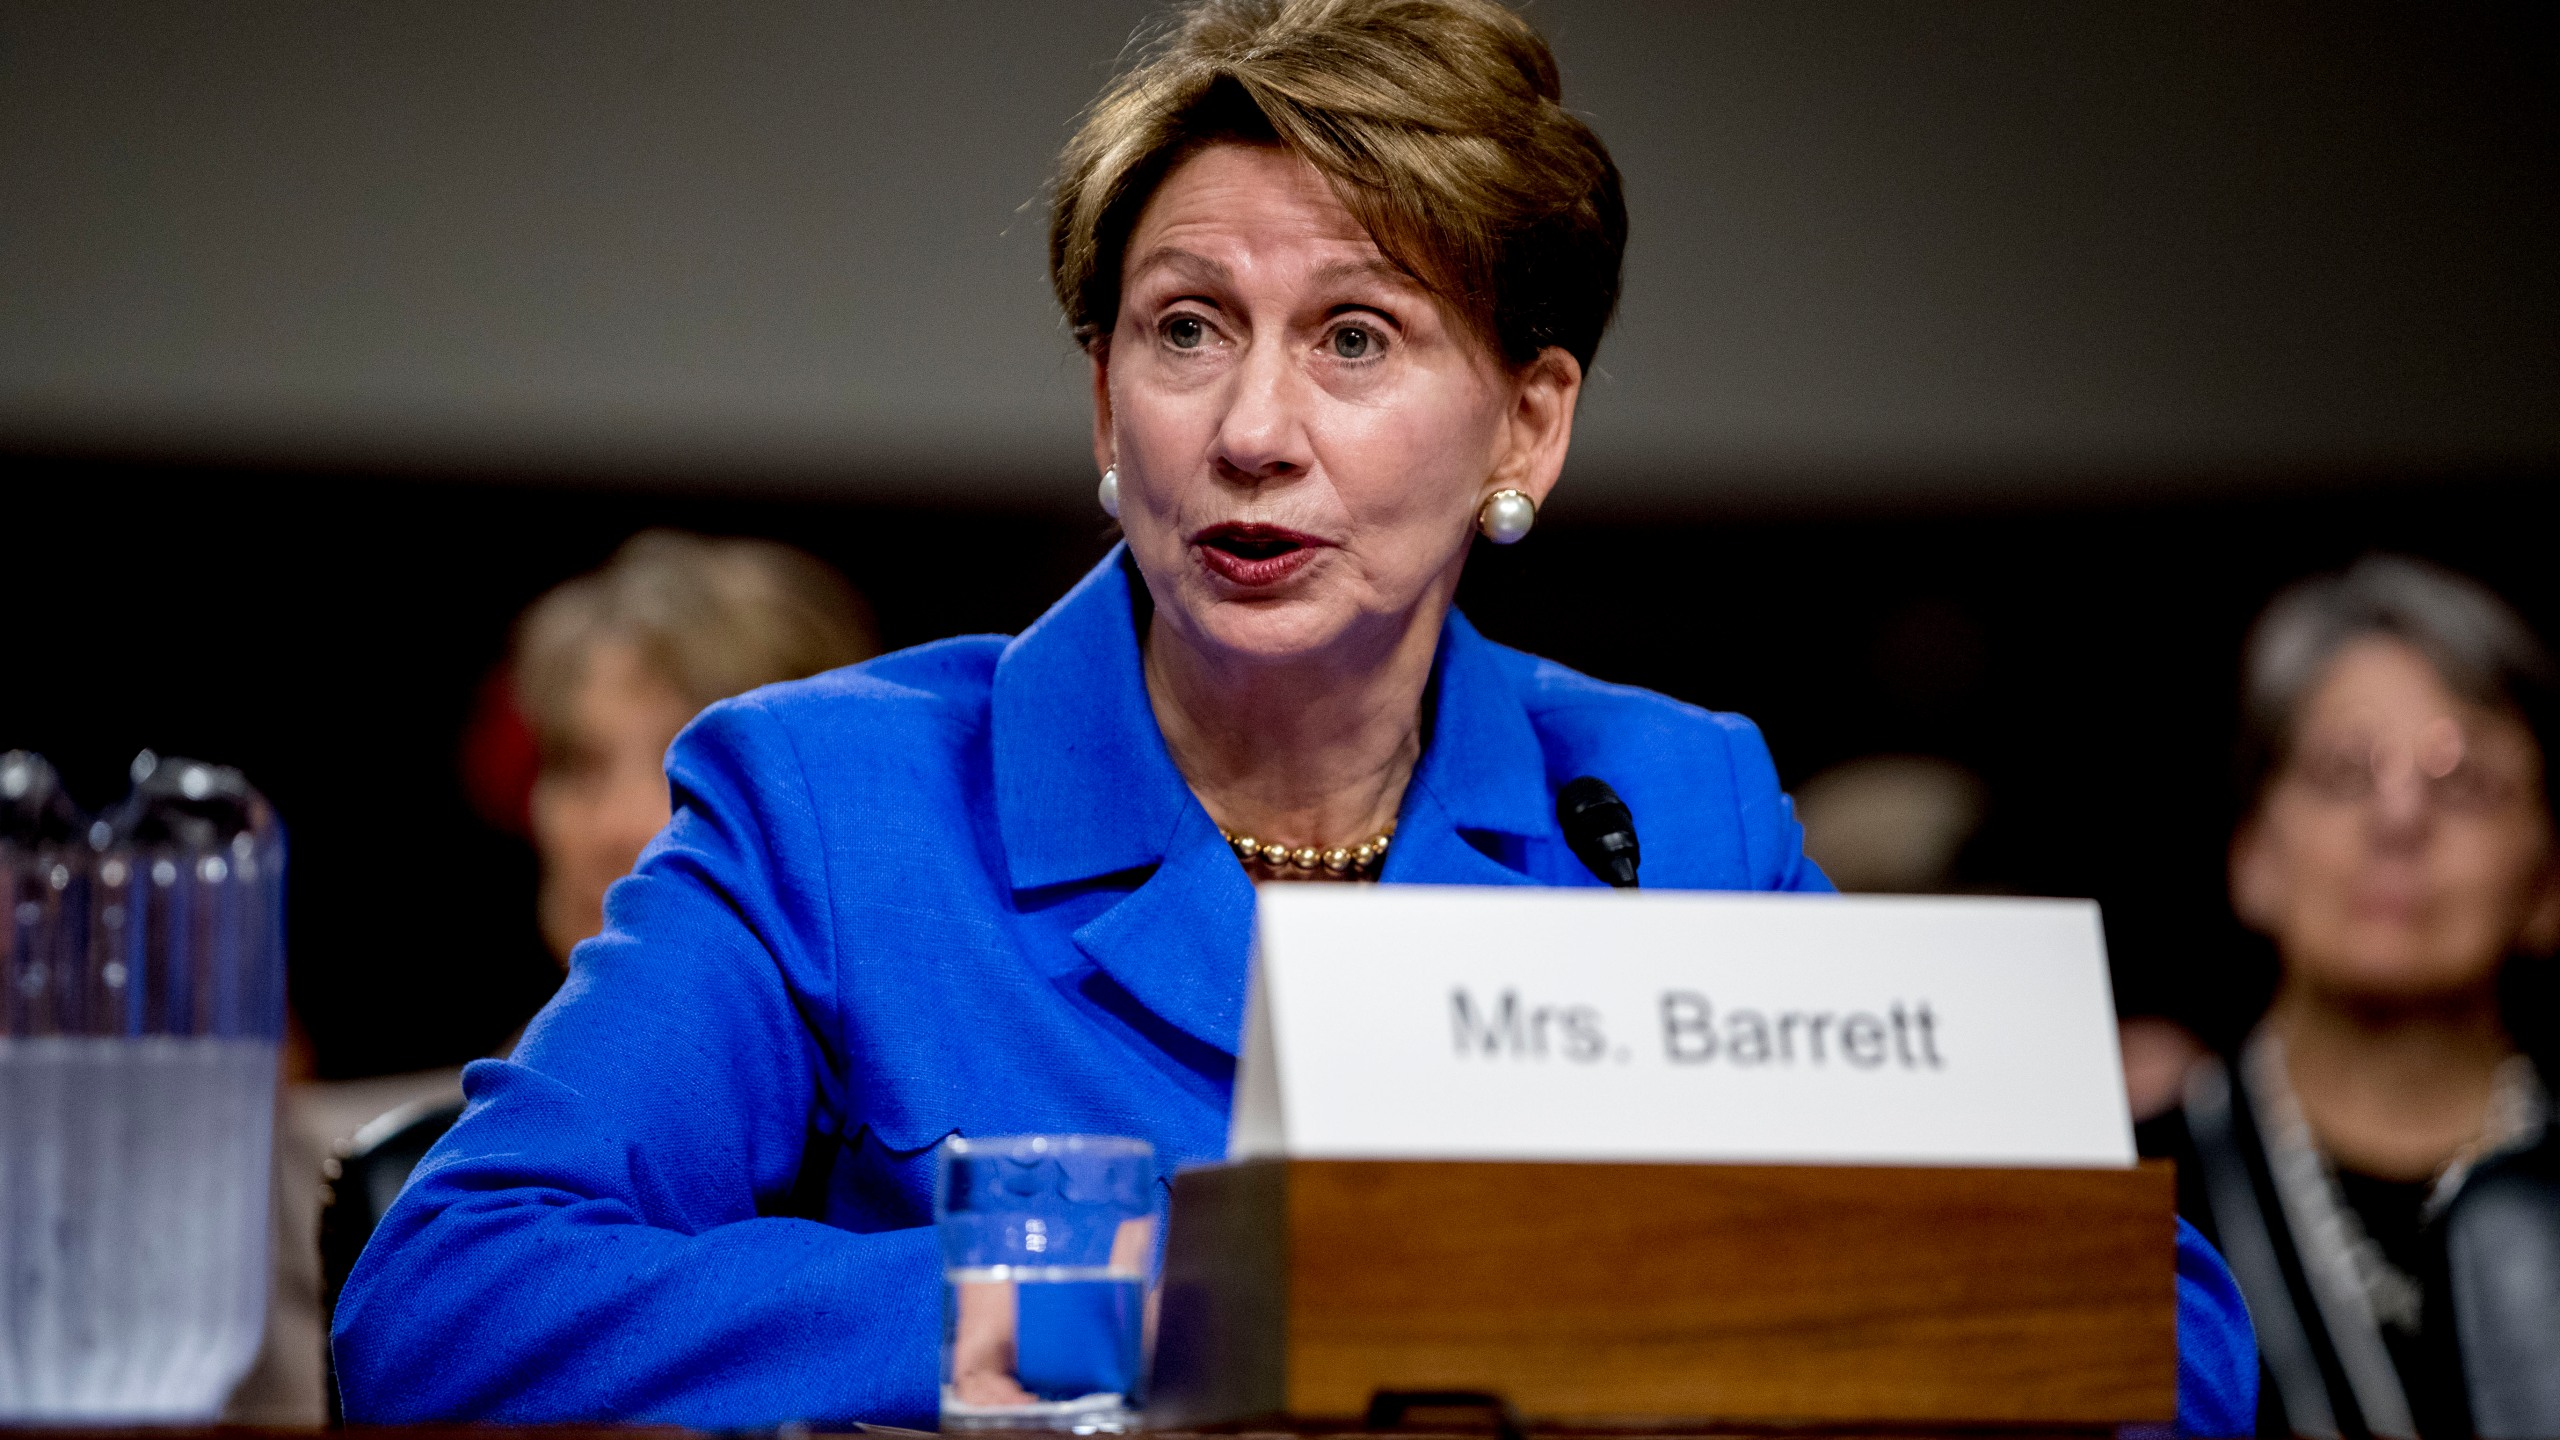 Barbara Barrett